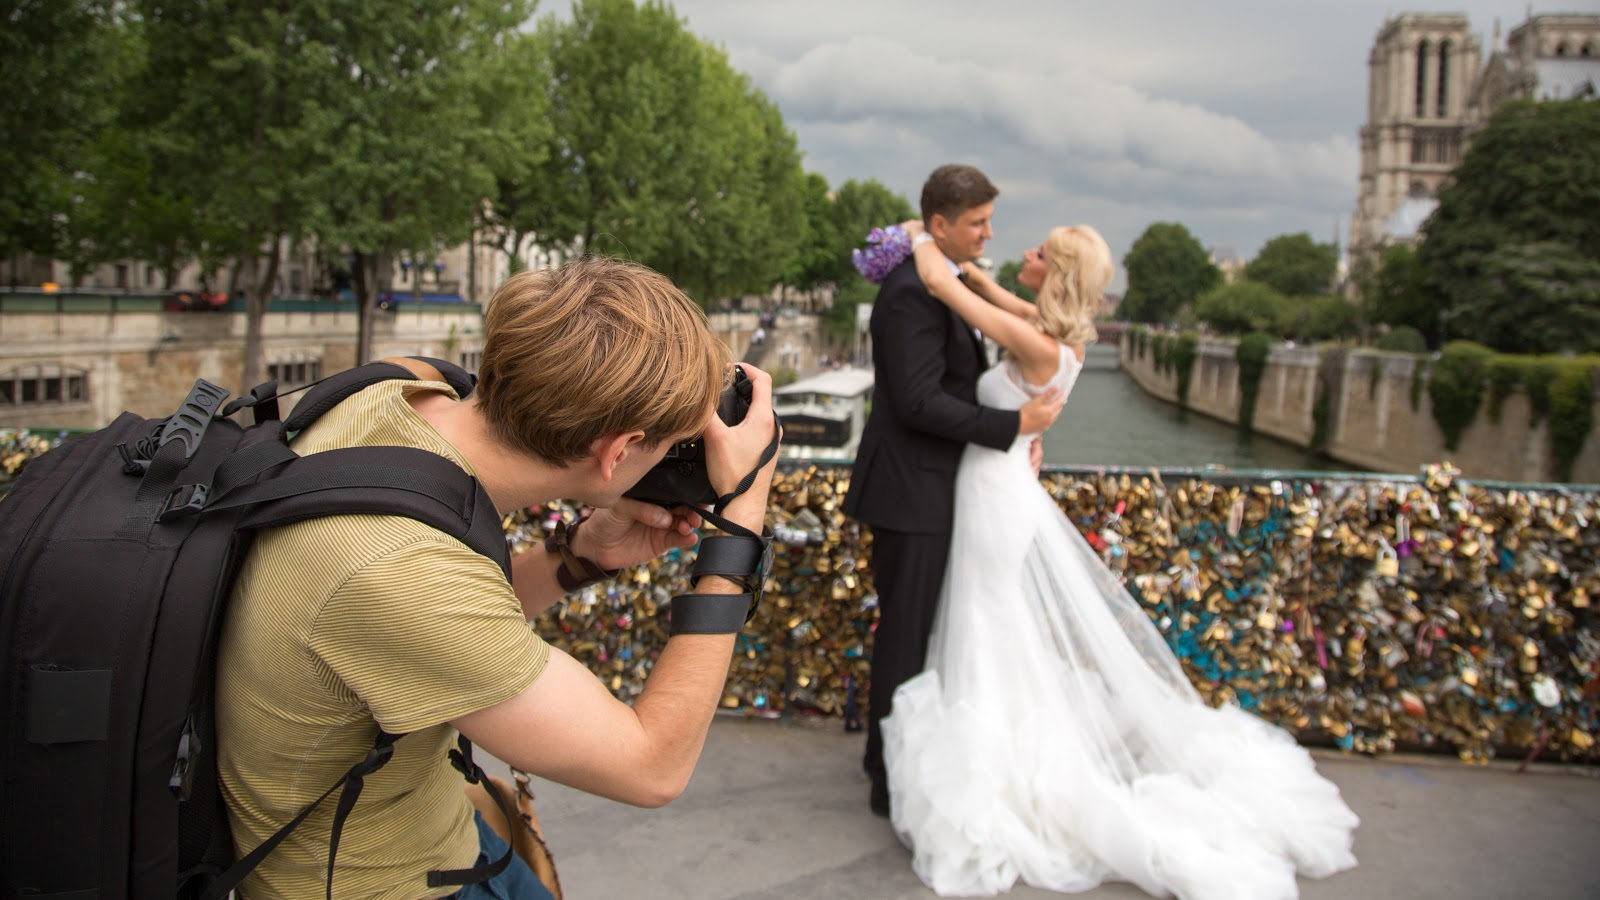 Wedding_Photography_in_Paris%2C_France.jpg